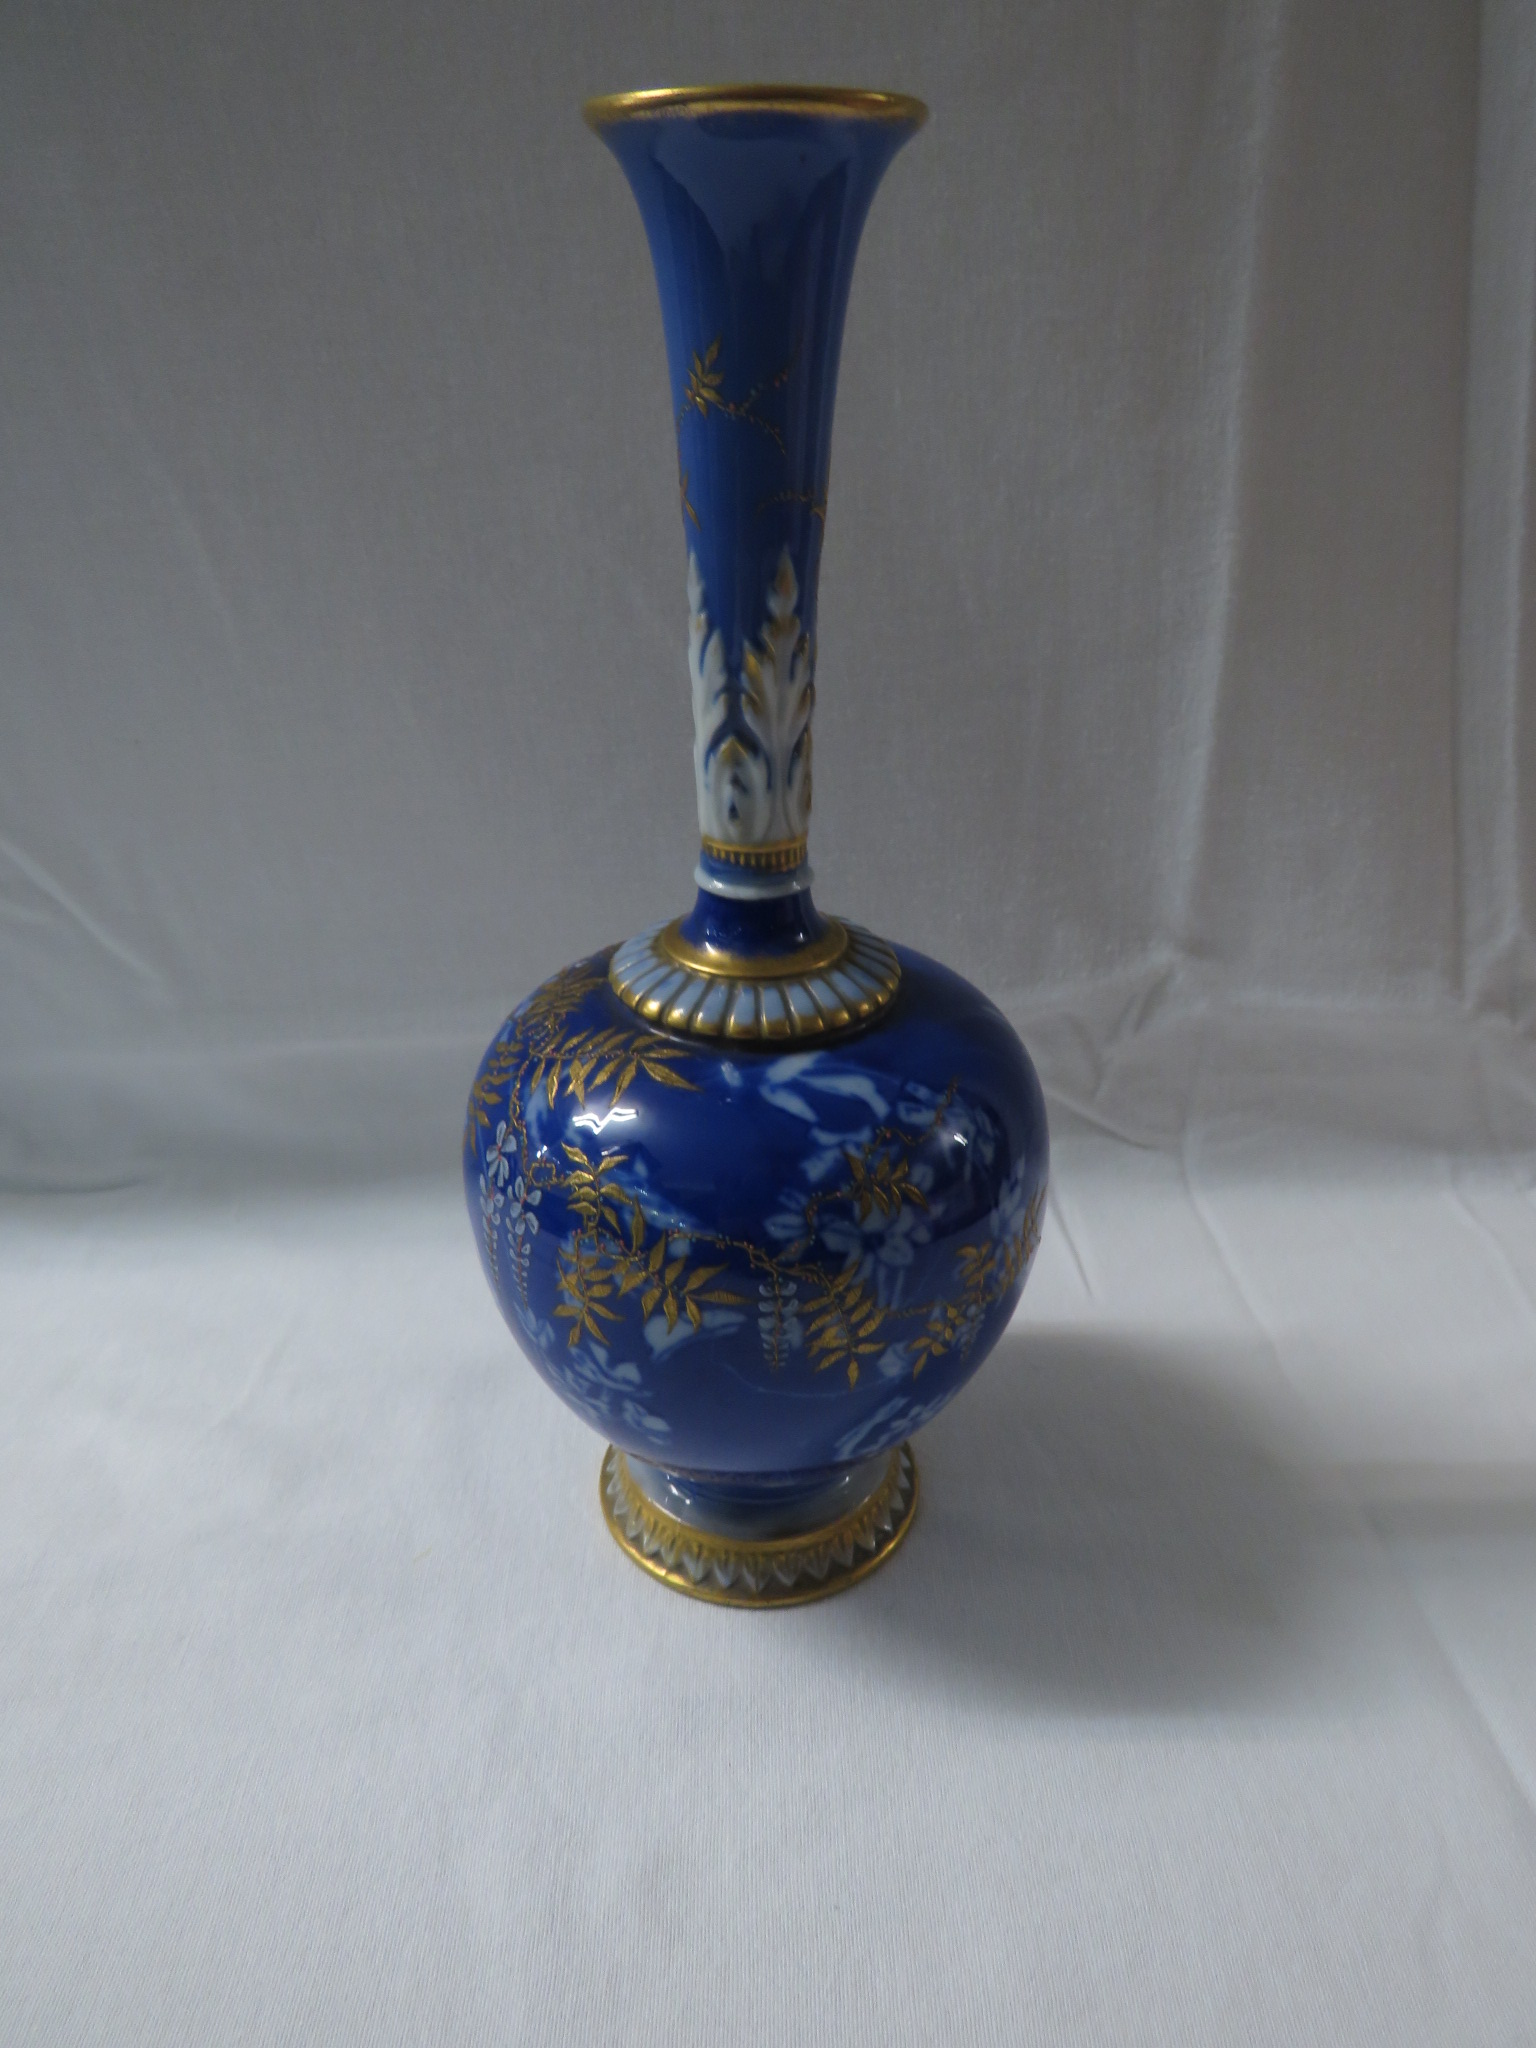 Lot 14 - A Royal Worcester porcelain vase of bottle shape with slender neck moulded with acanthus,